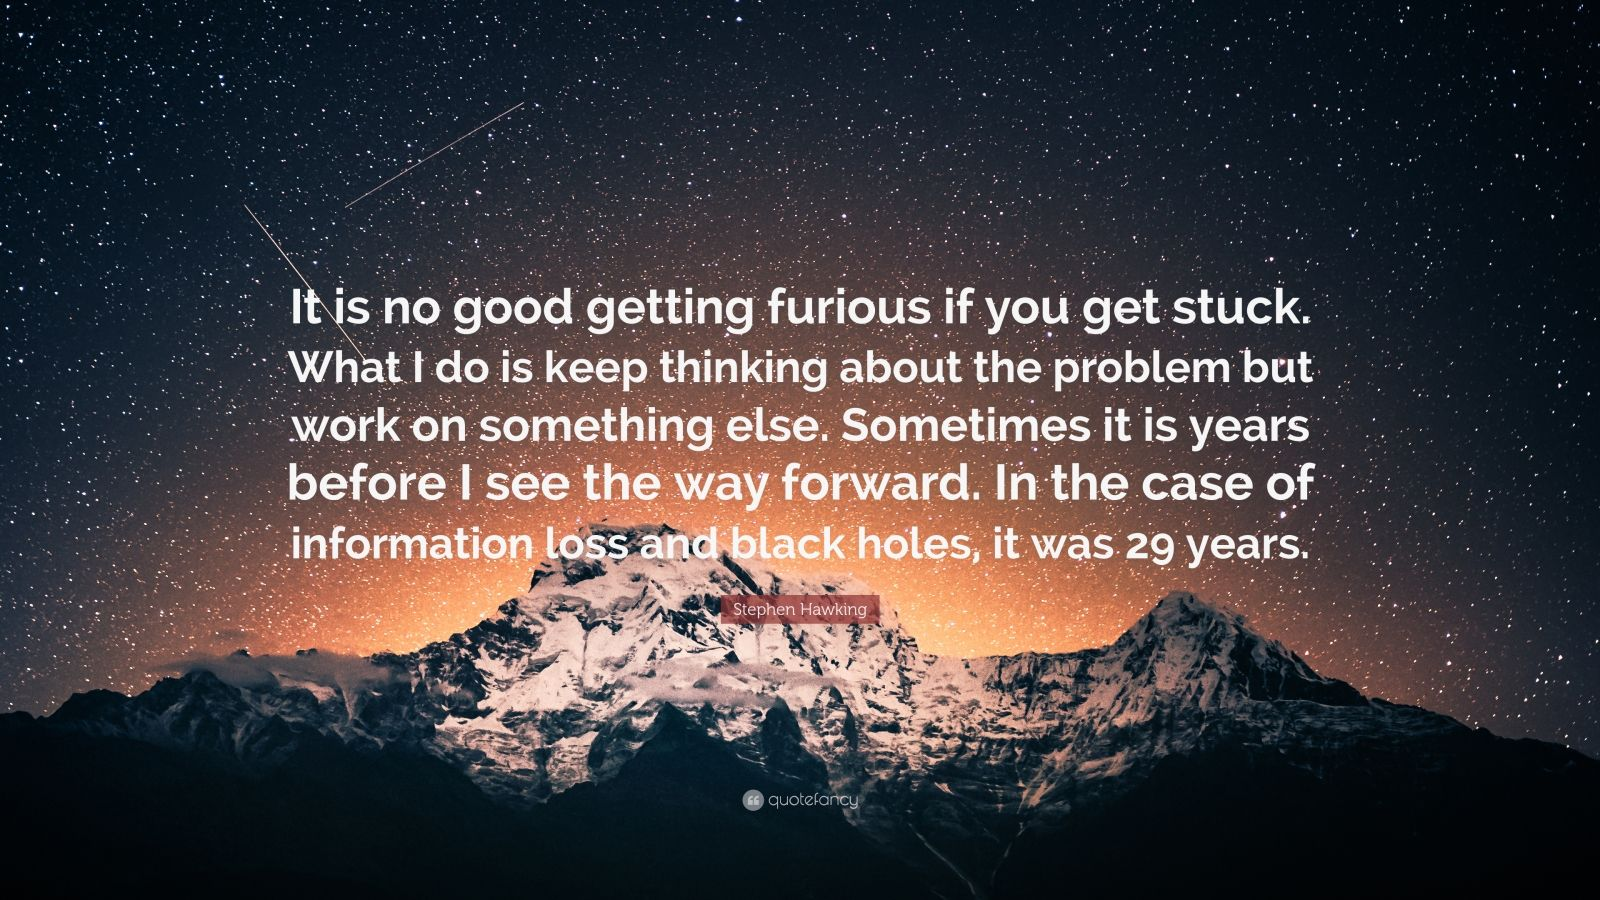 """Stephen Hawking Quote: """"It is no good getting furious if you get stuck. What I do is keep thinking about the problem but work on something else. Sometimes it is years before I see the way forward. In the case of information loss and black holes, it was 29 years."""""""